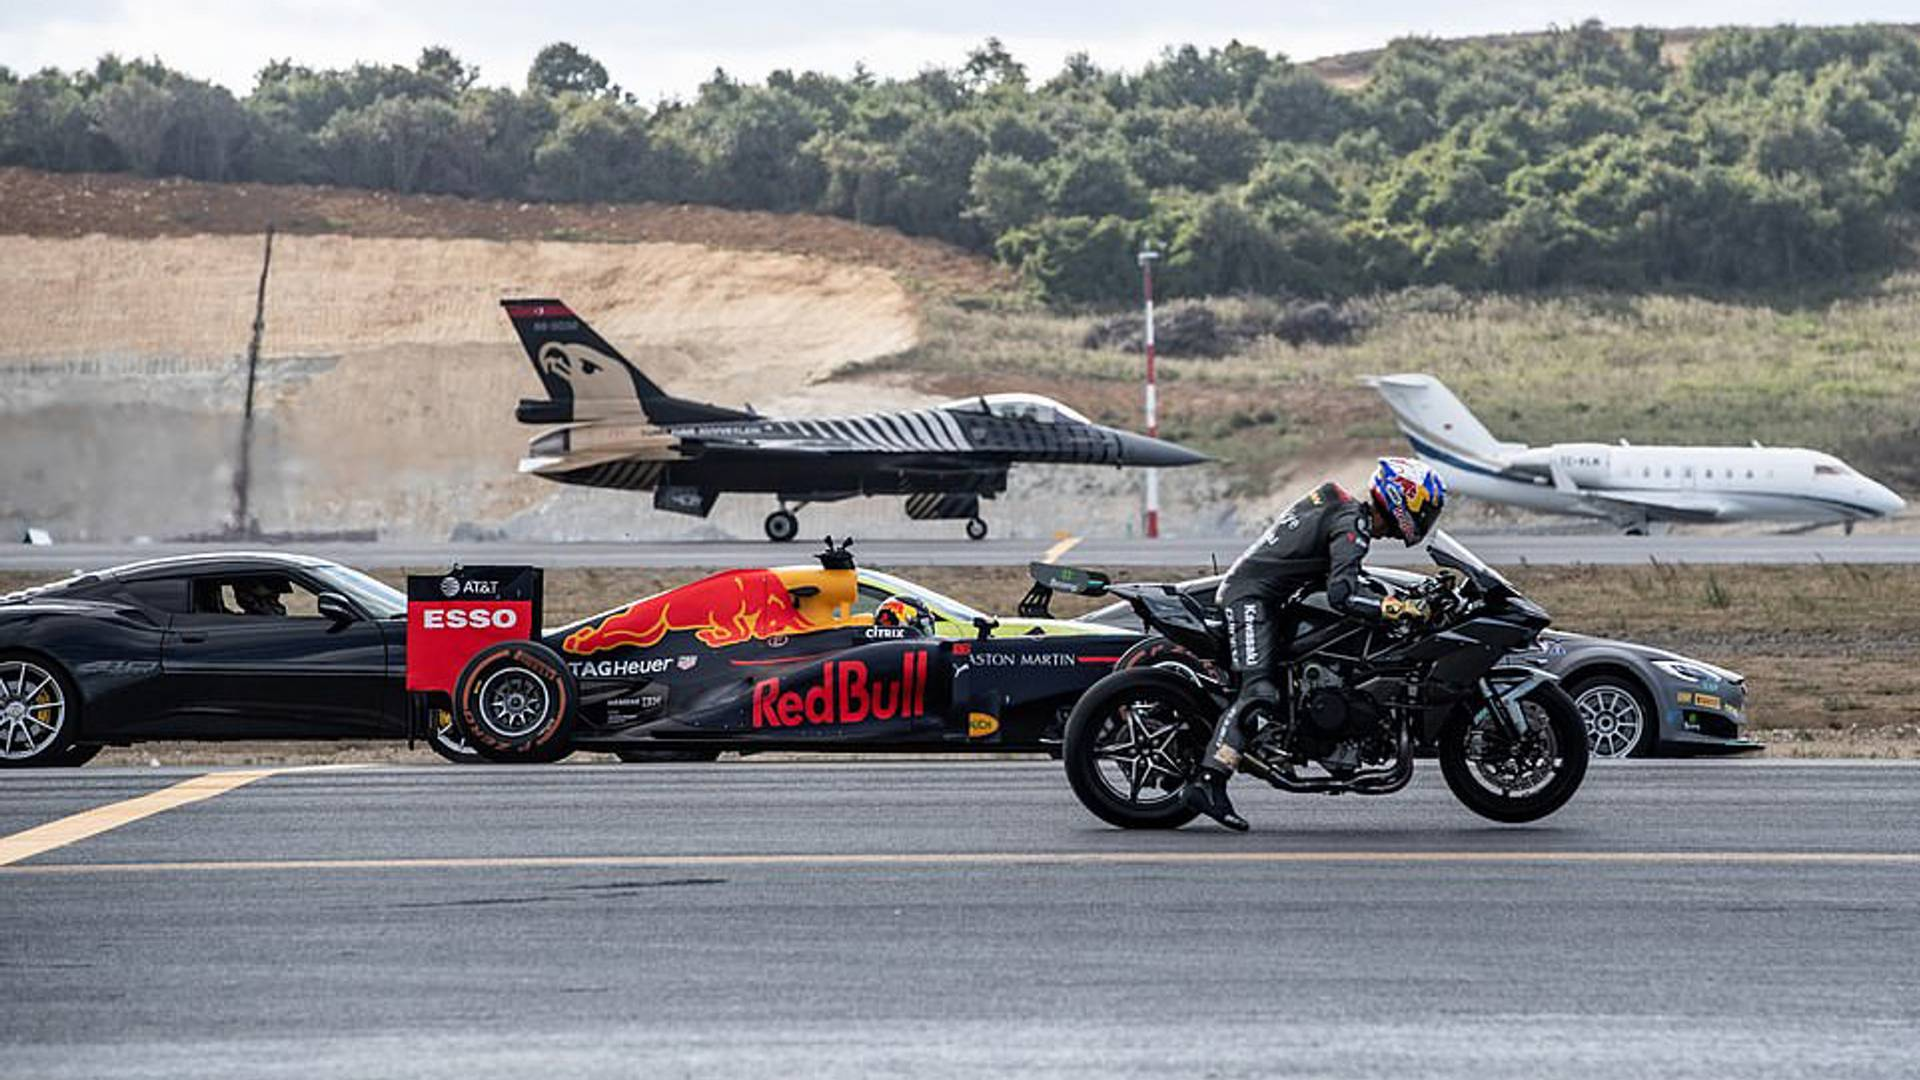 Epic Drag Race Pits Supercars Jet Fighter And Kawasaki H2r